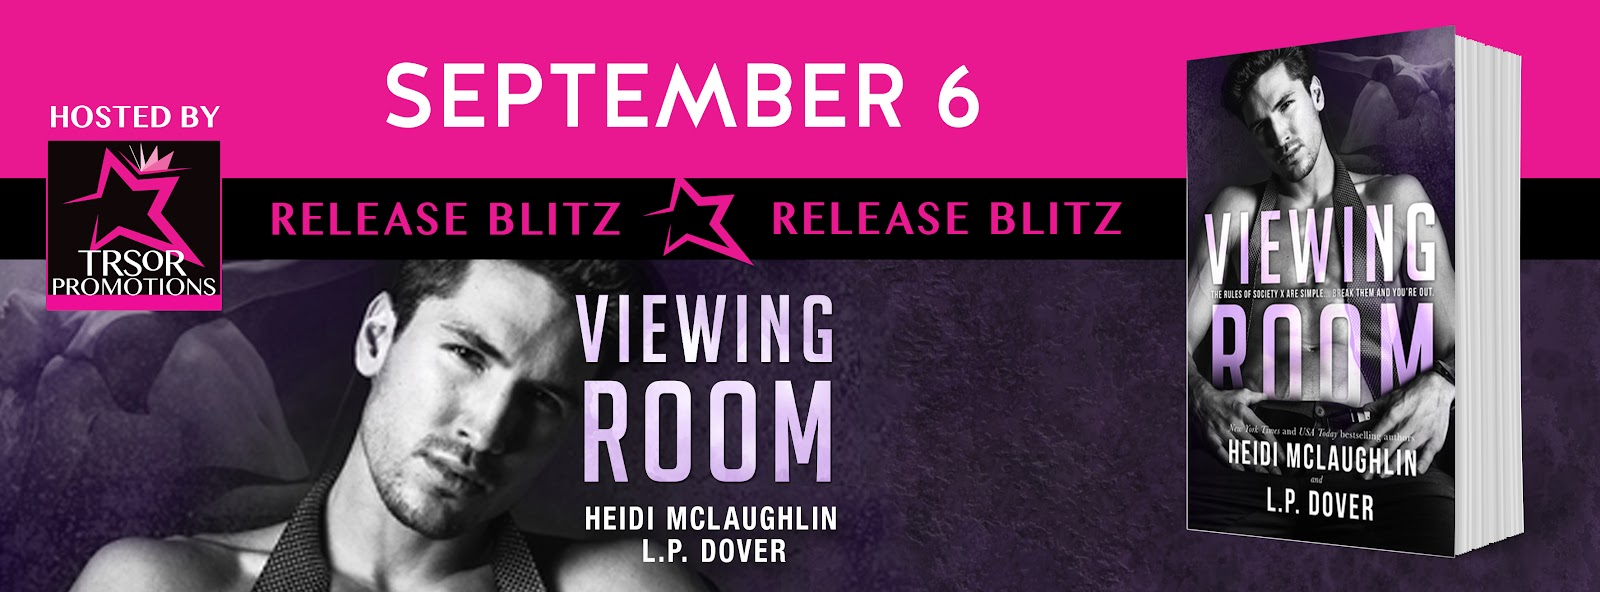 VIEWING_ROOM_RELEASE_BLITZ.jpg